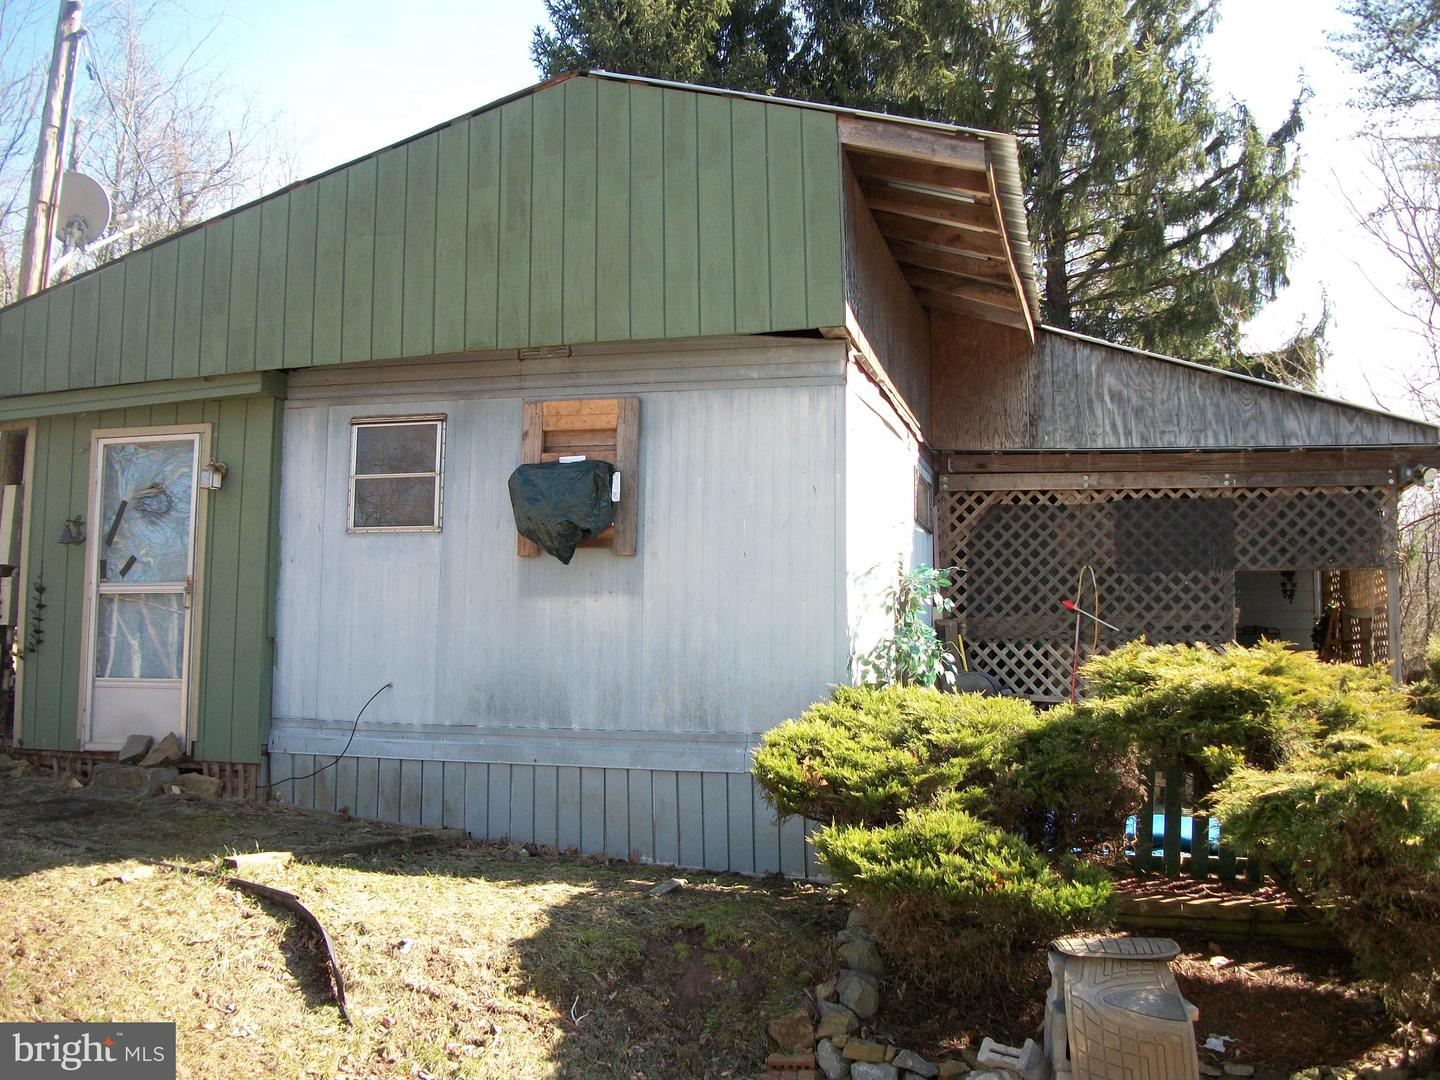 Additional photo for property listing at 1474 Sticky Kline Rd S Berkeley Springs, West Virginia 25411 United States